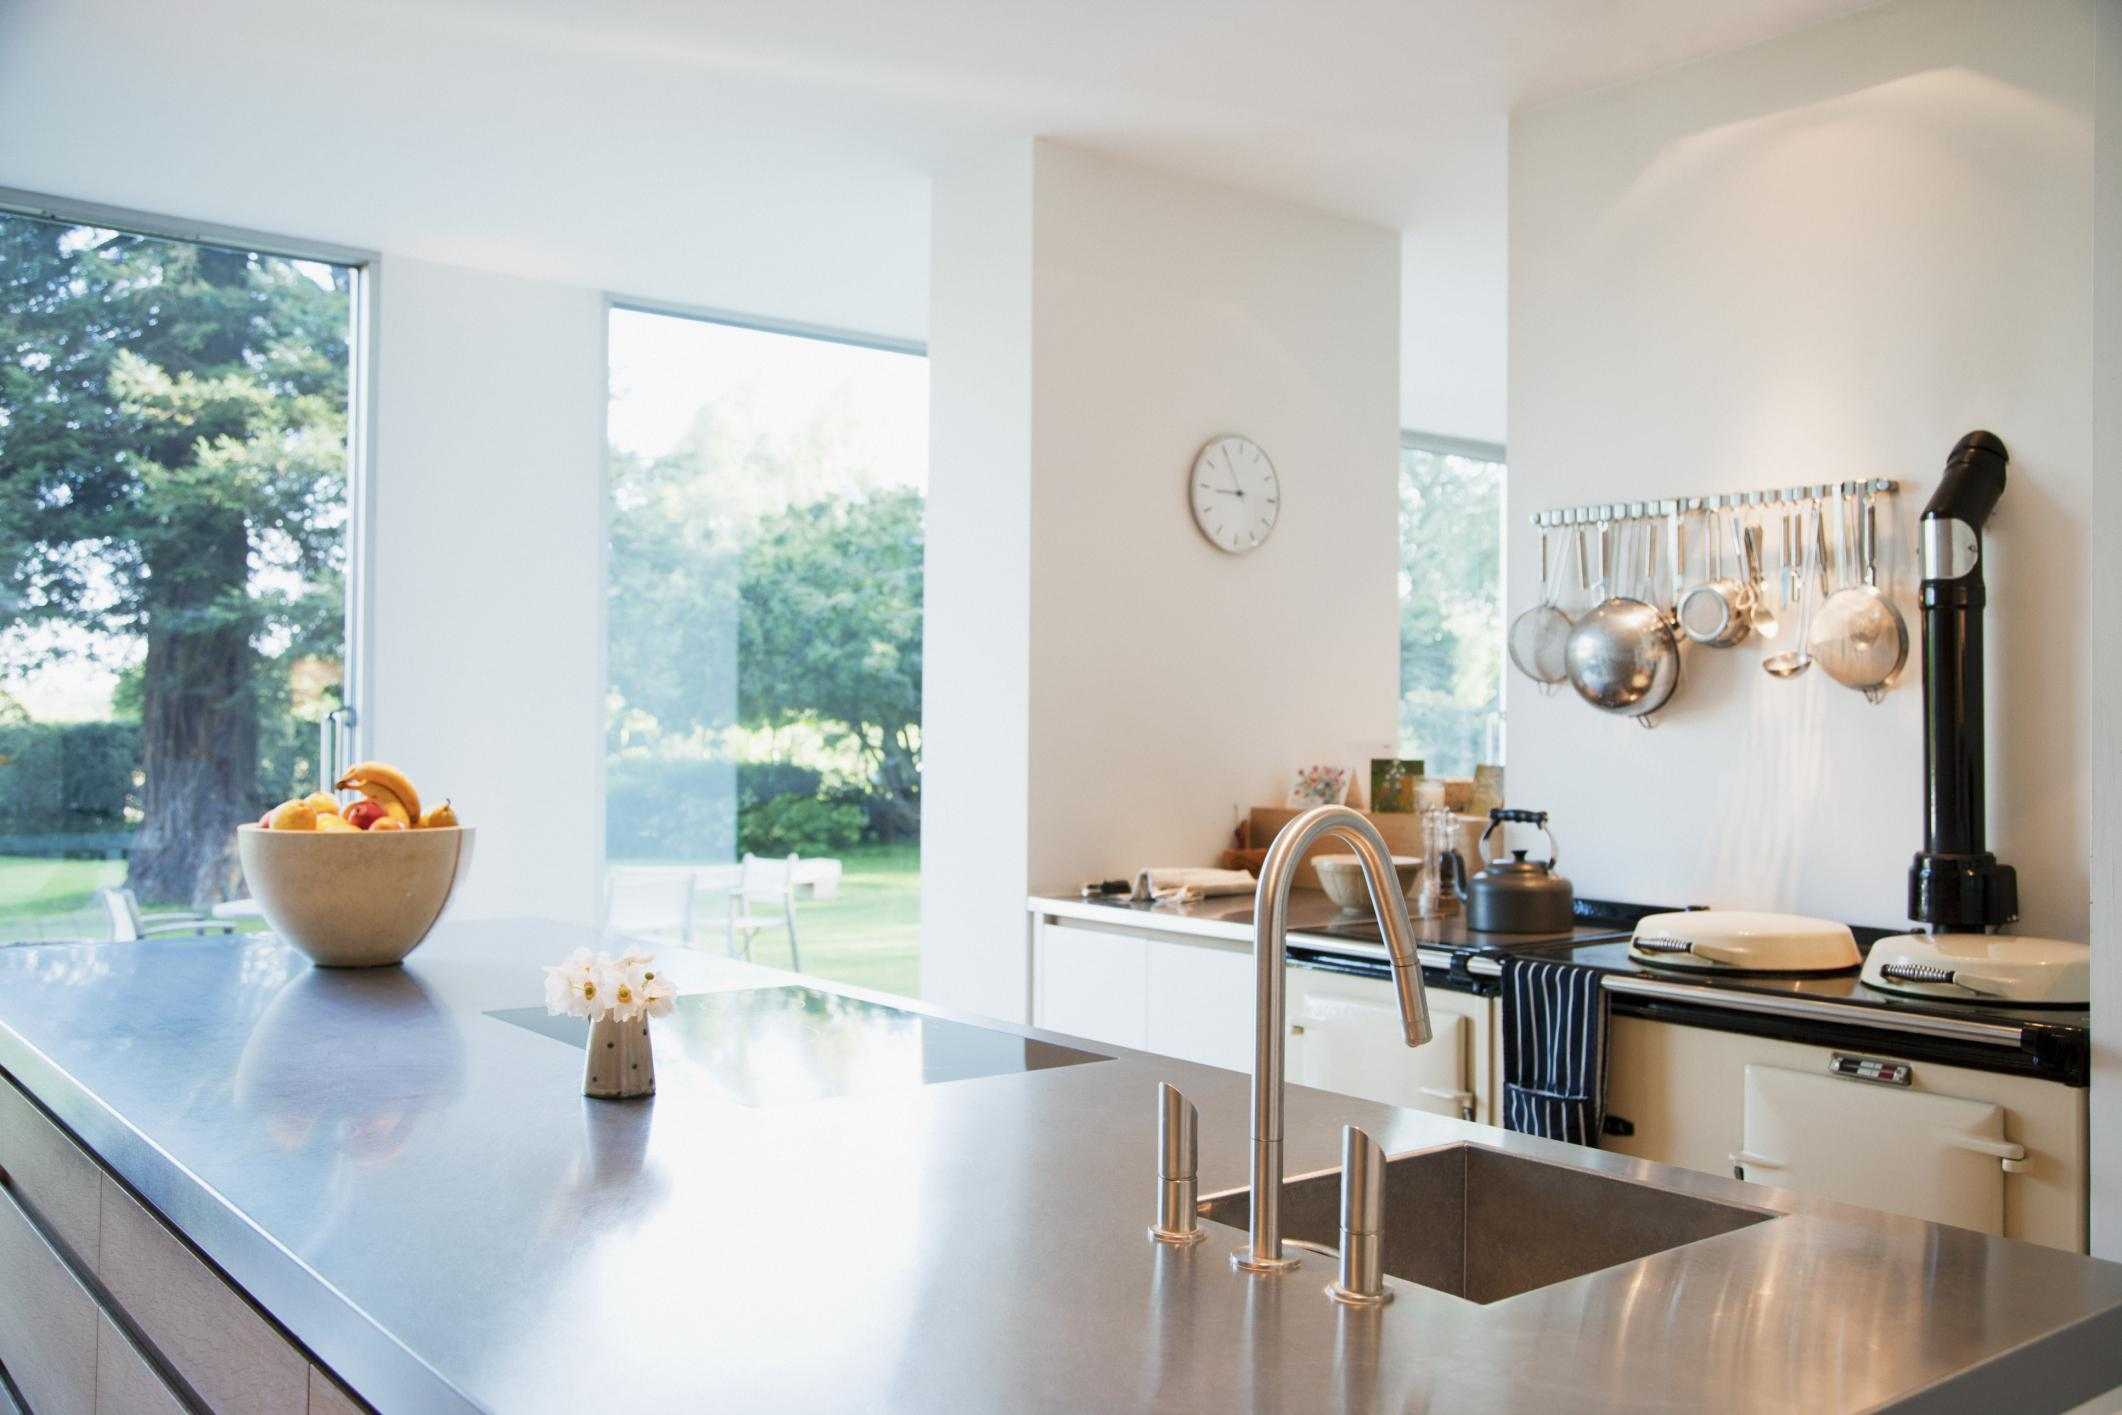 16 Kitchens That Prove Stainless Steel Can Go Way Beyond Appliances Sheknows